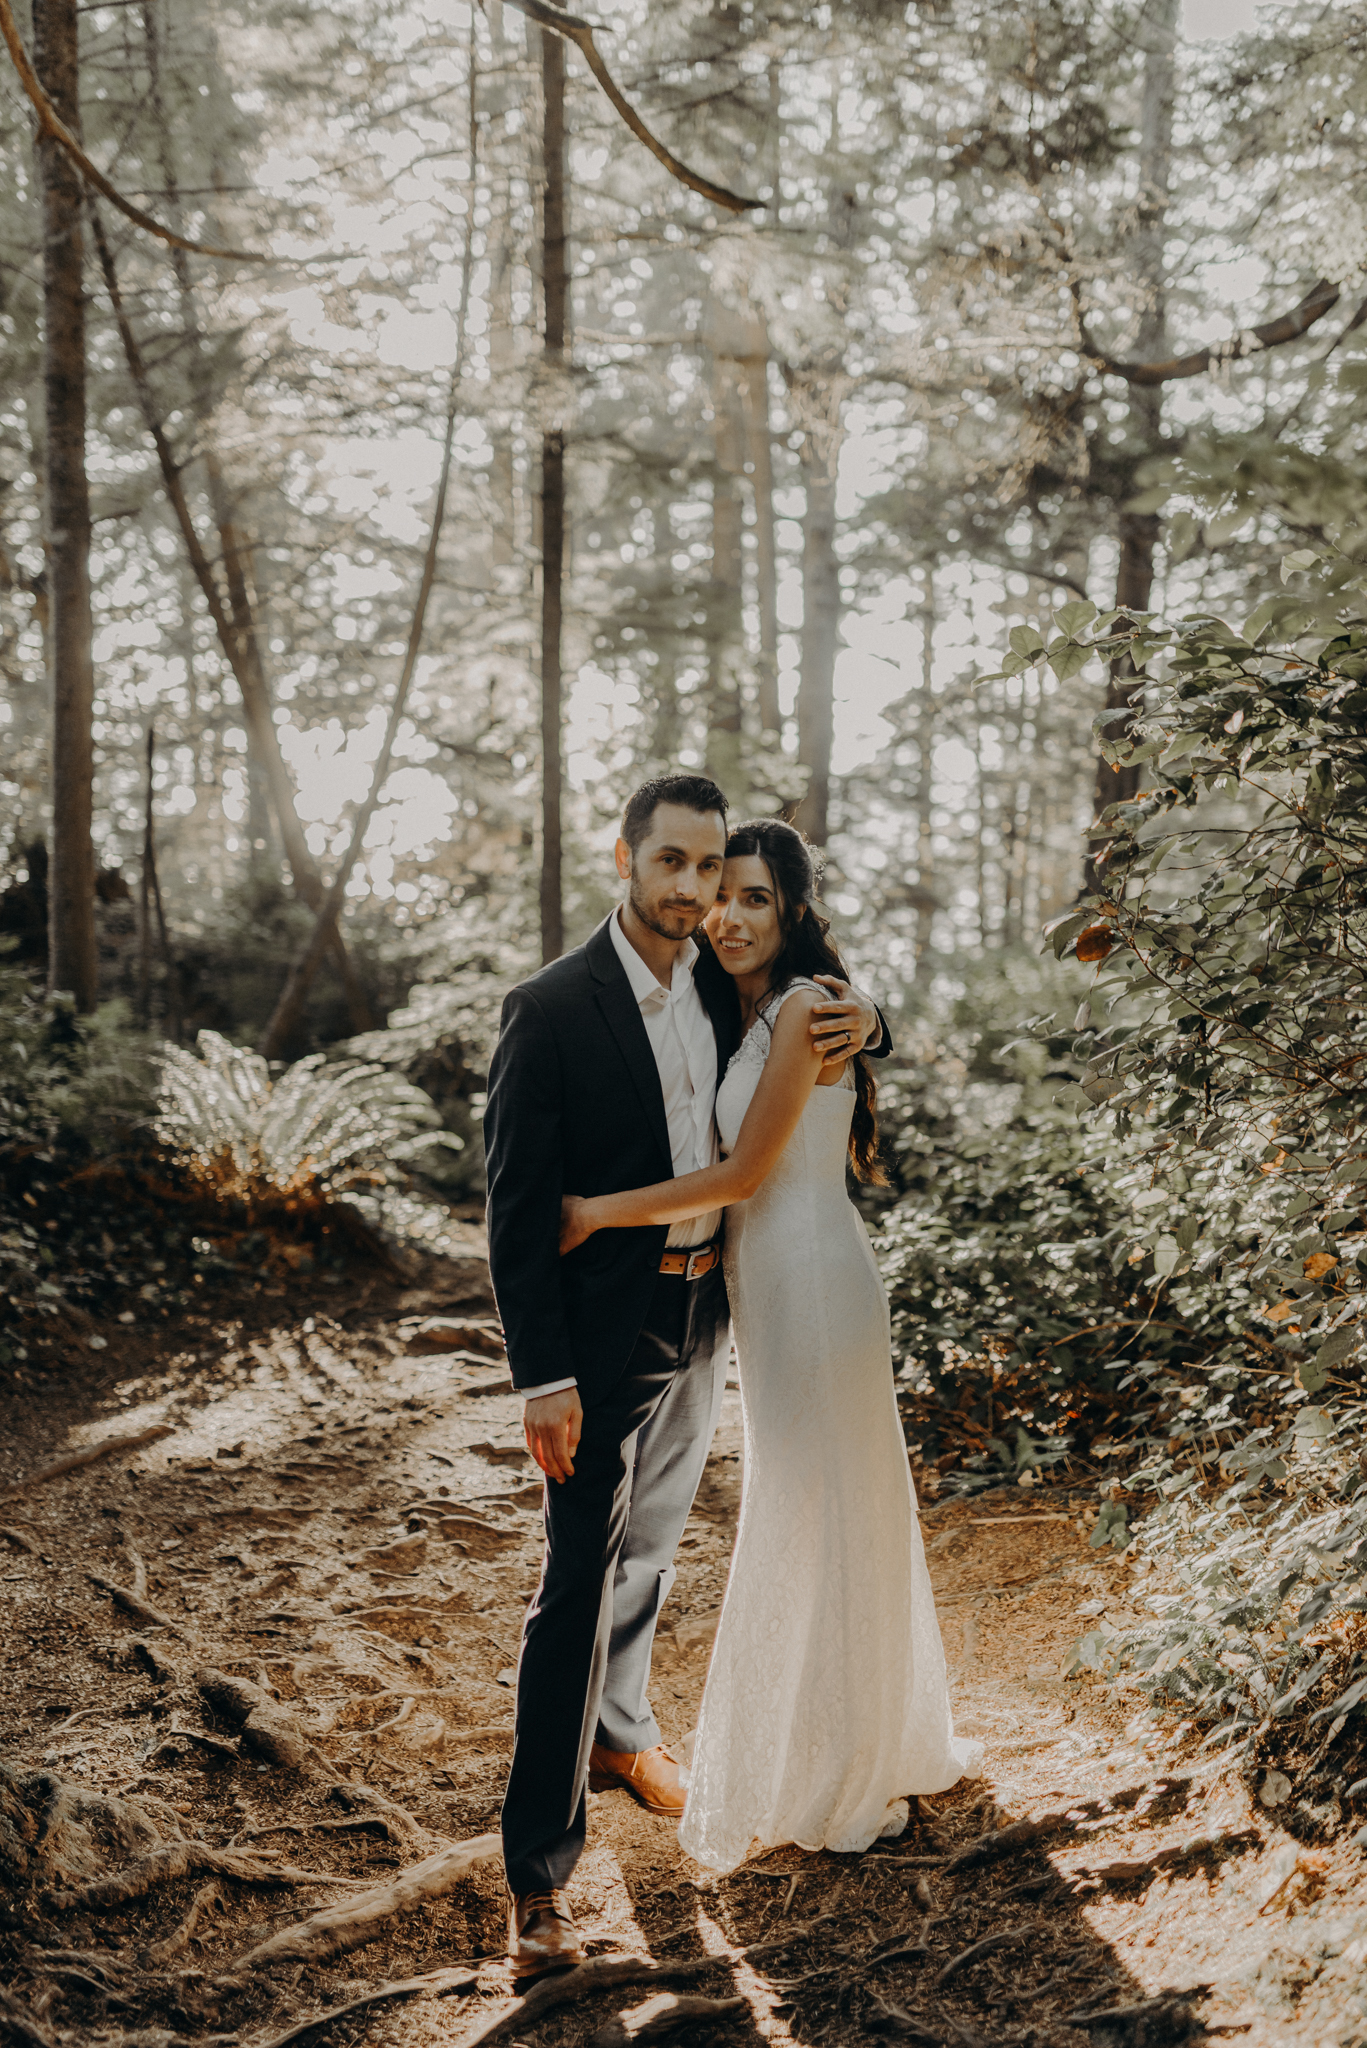 Isaiah + Taylor Photography - Cape Flattery Elopement, Olympia National Forest Wedding Photographer-120.jpg